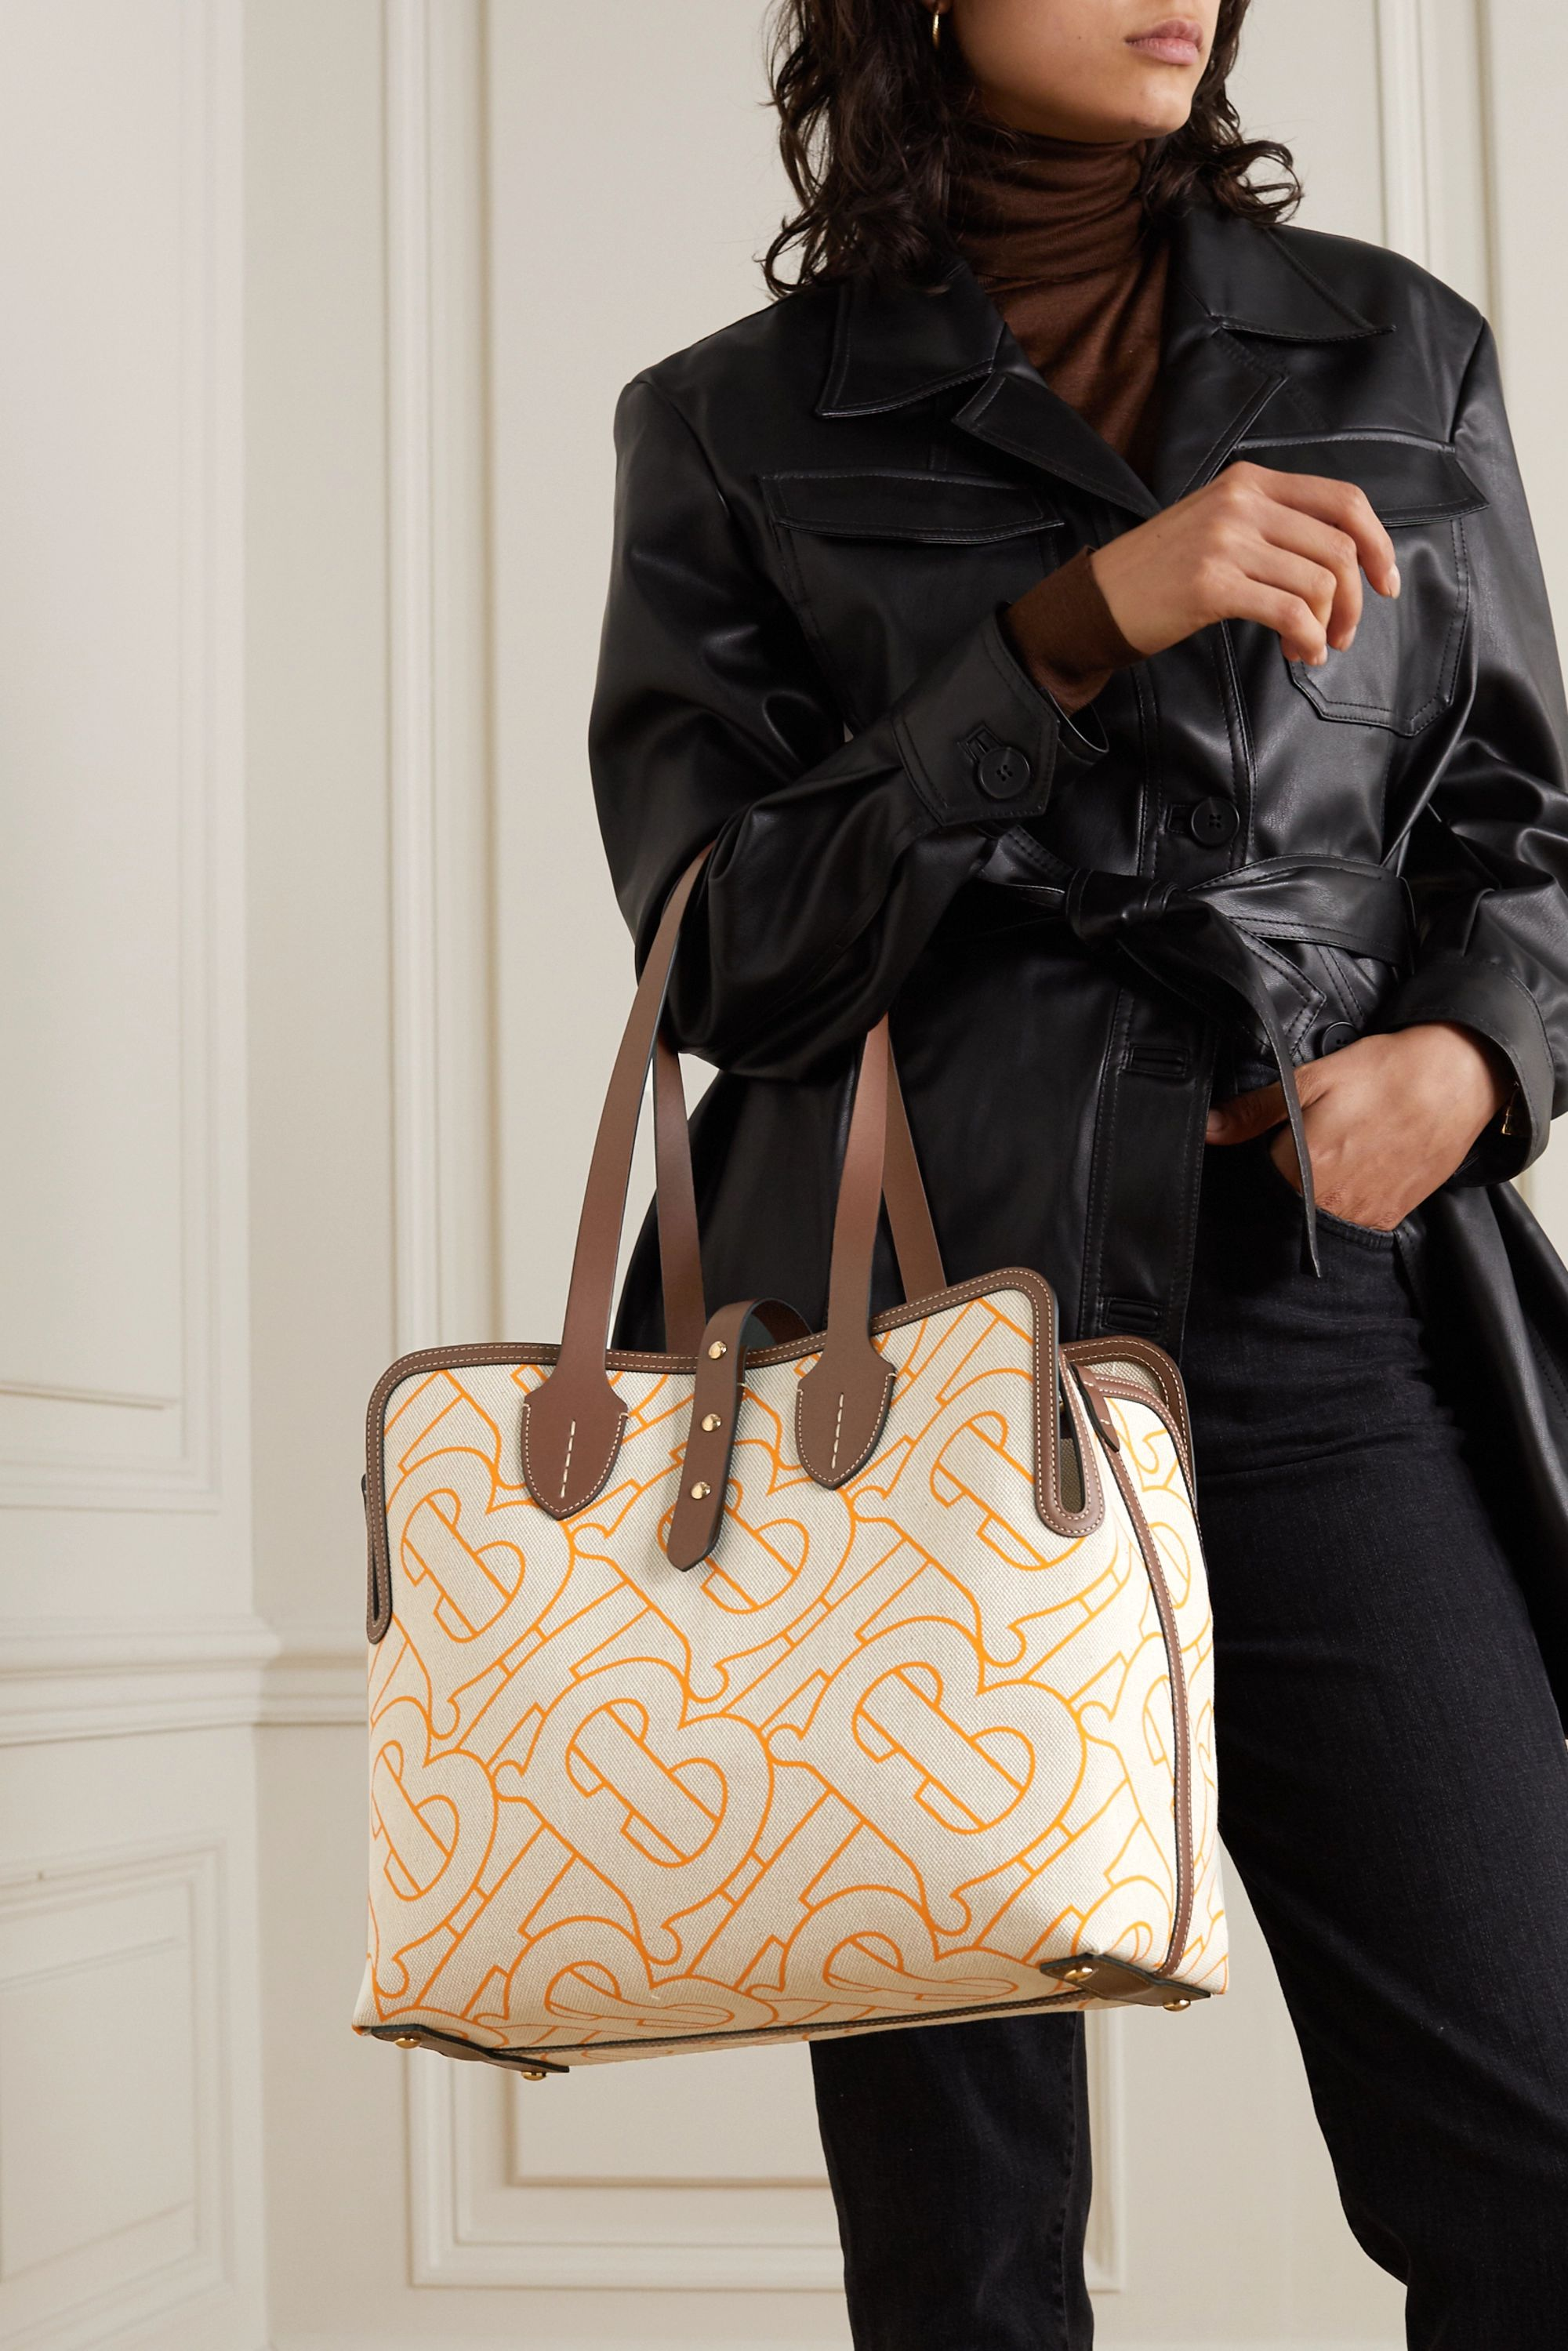 Burberry Leather-trimmed printed canvas tote